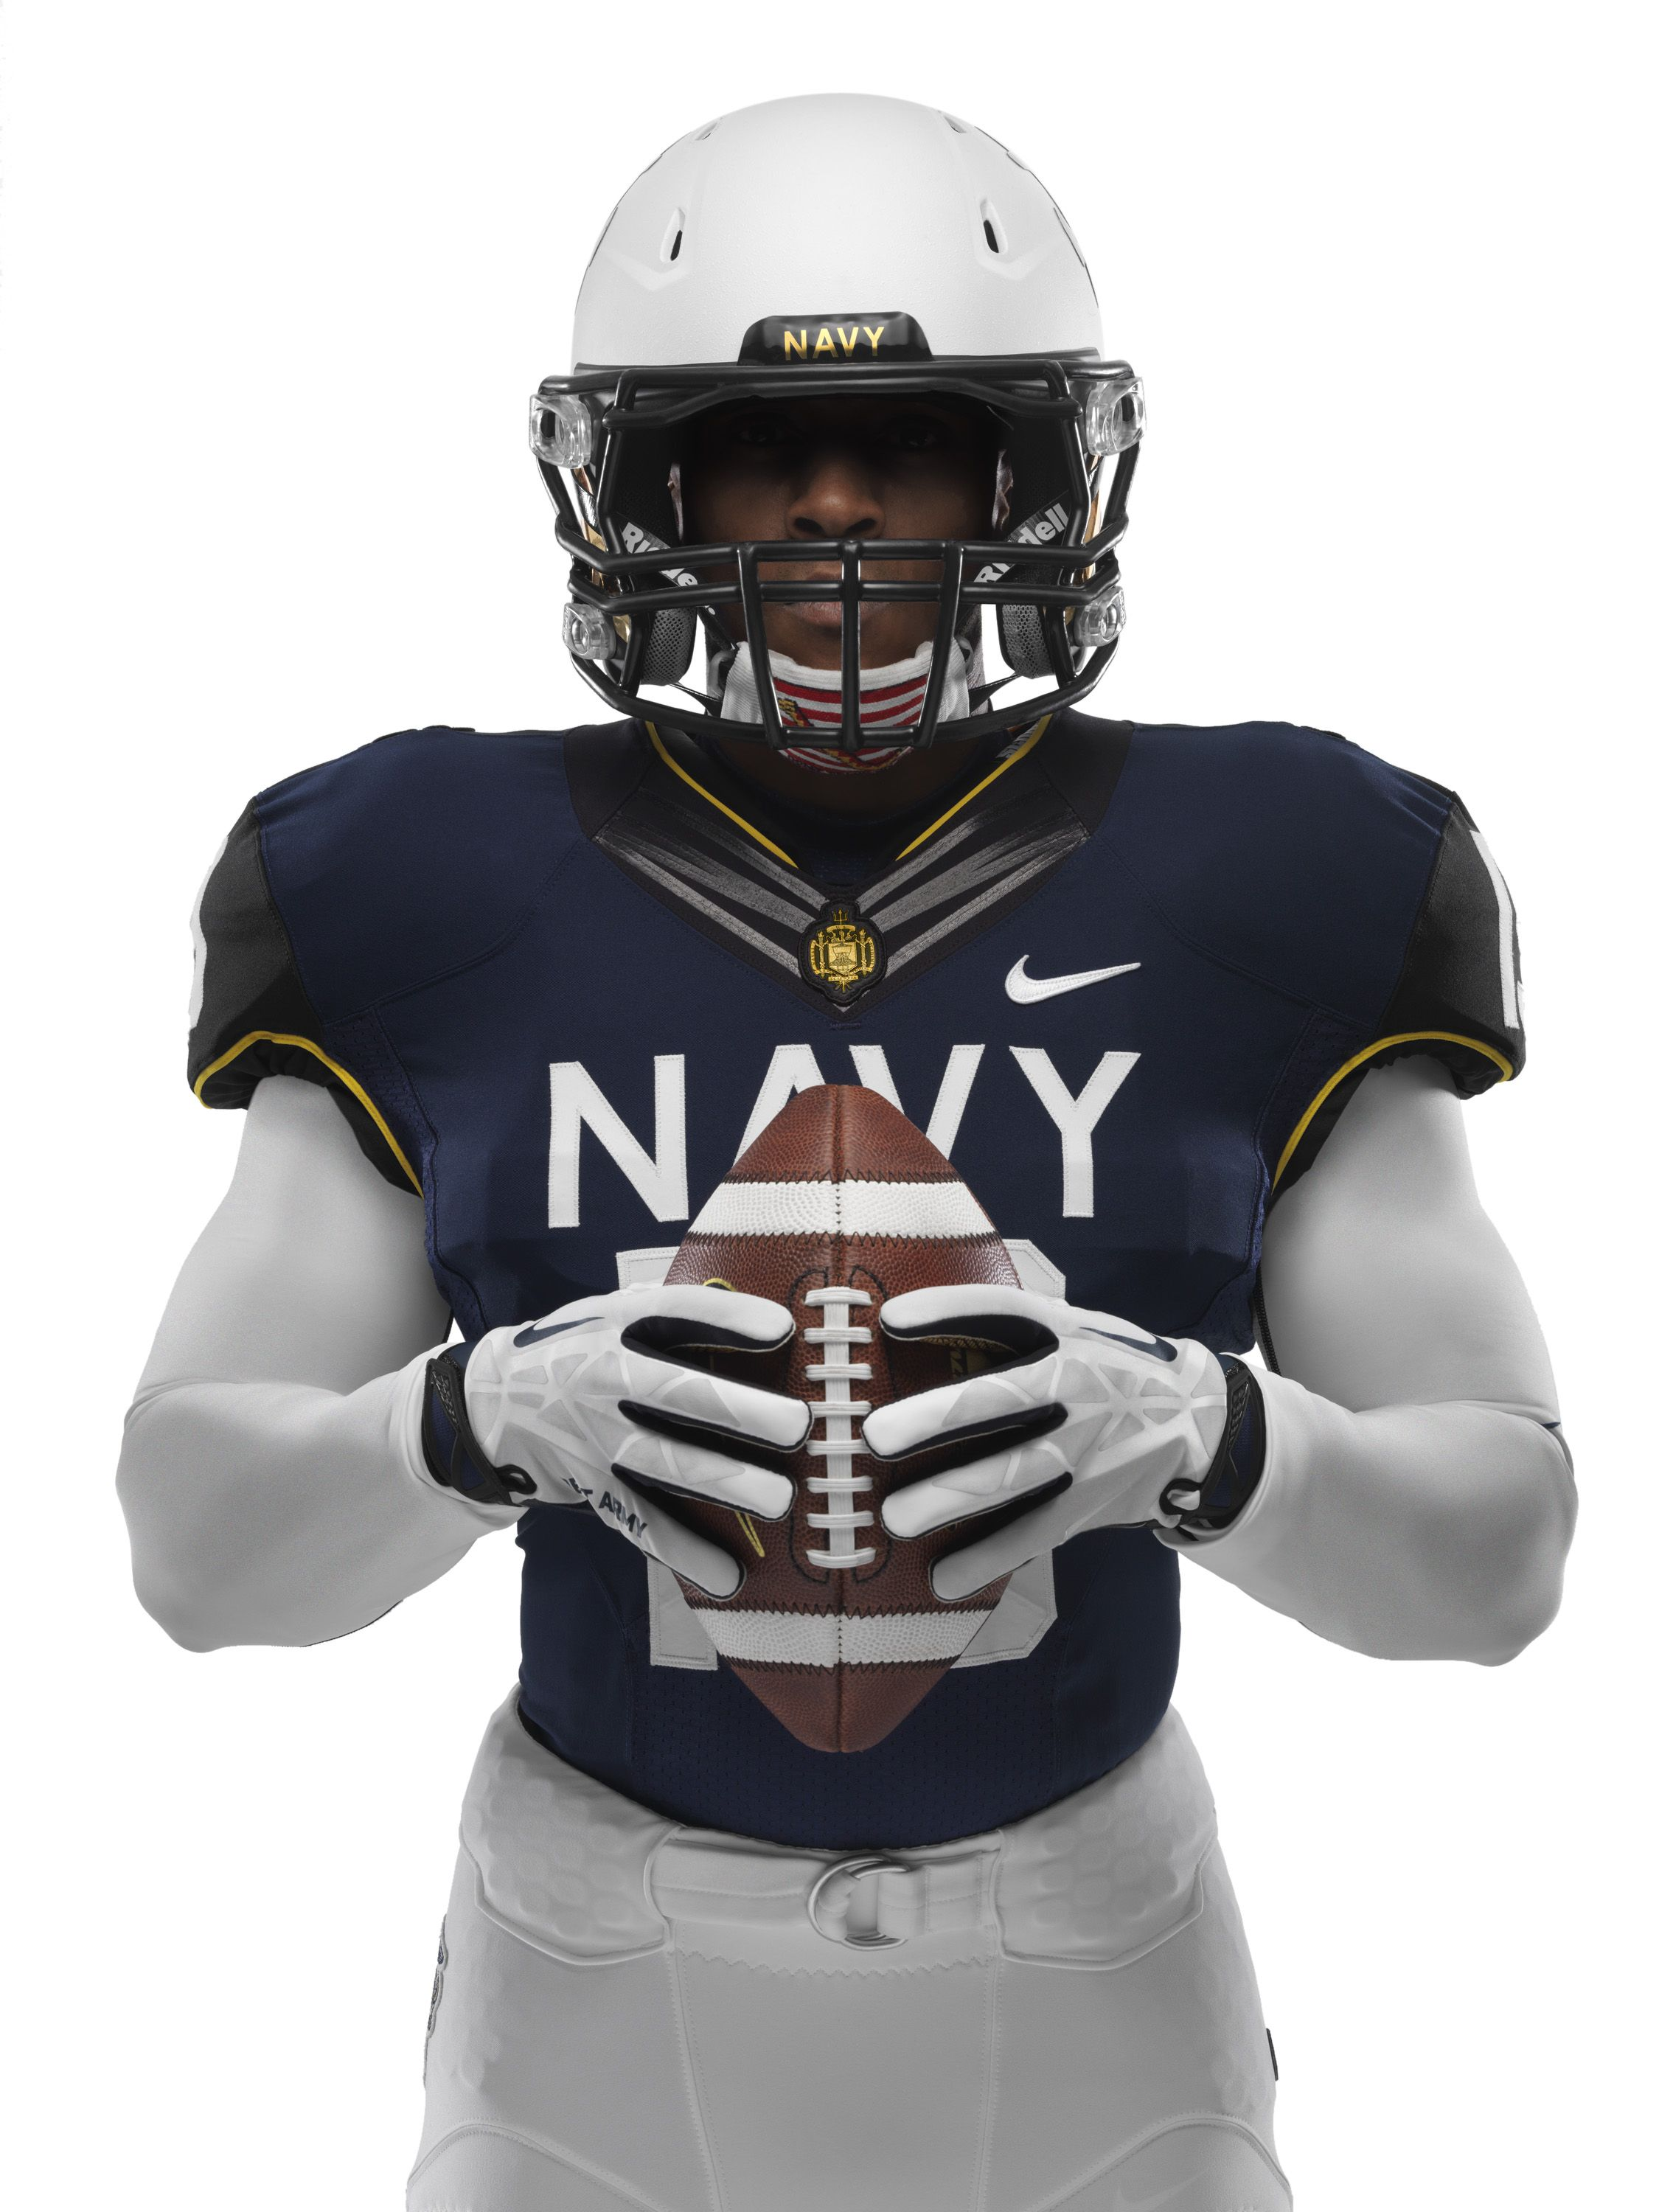 The front of Navy's uniform for the ArmyNavy Game